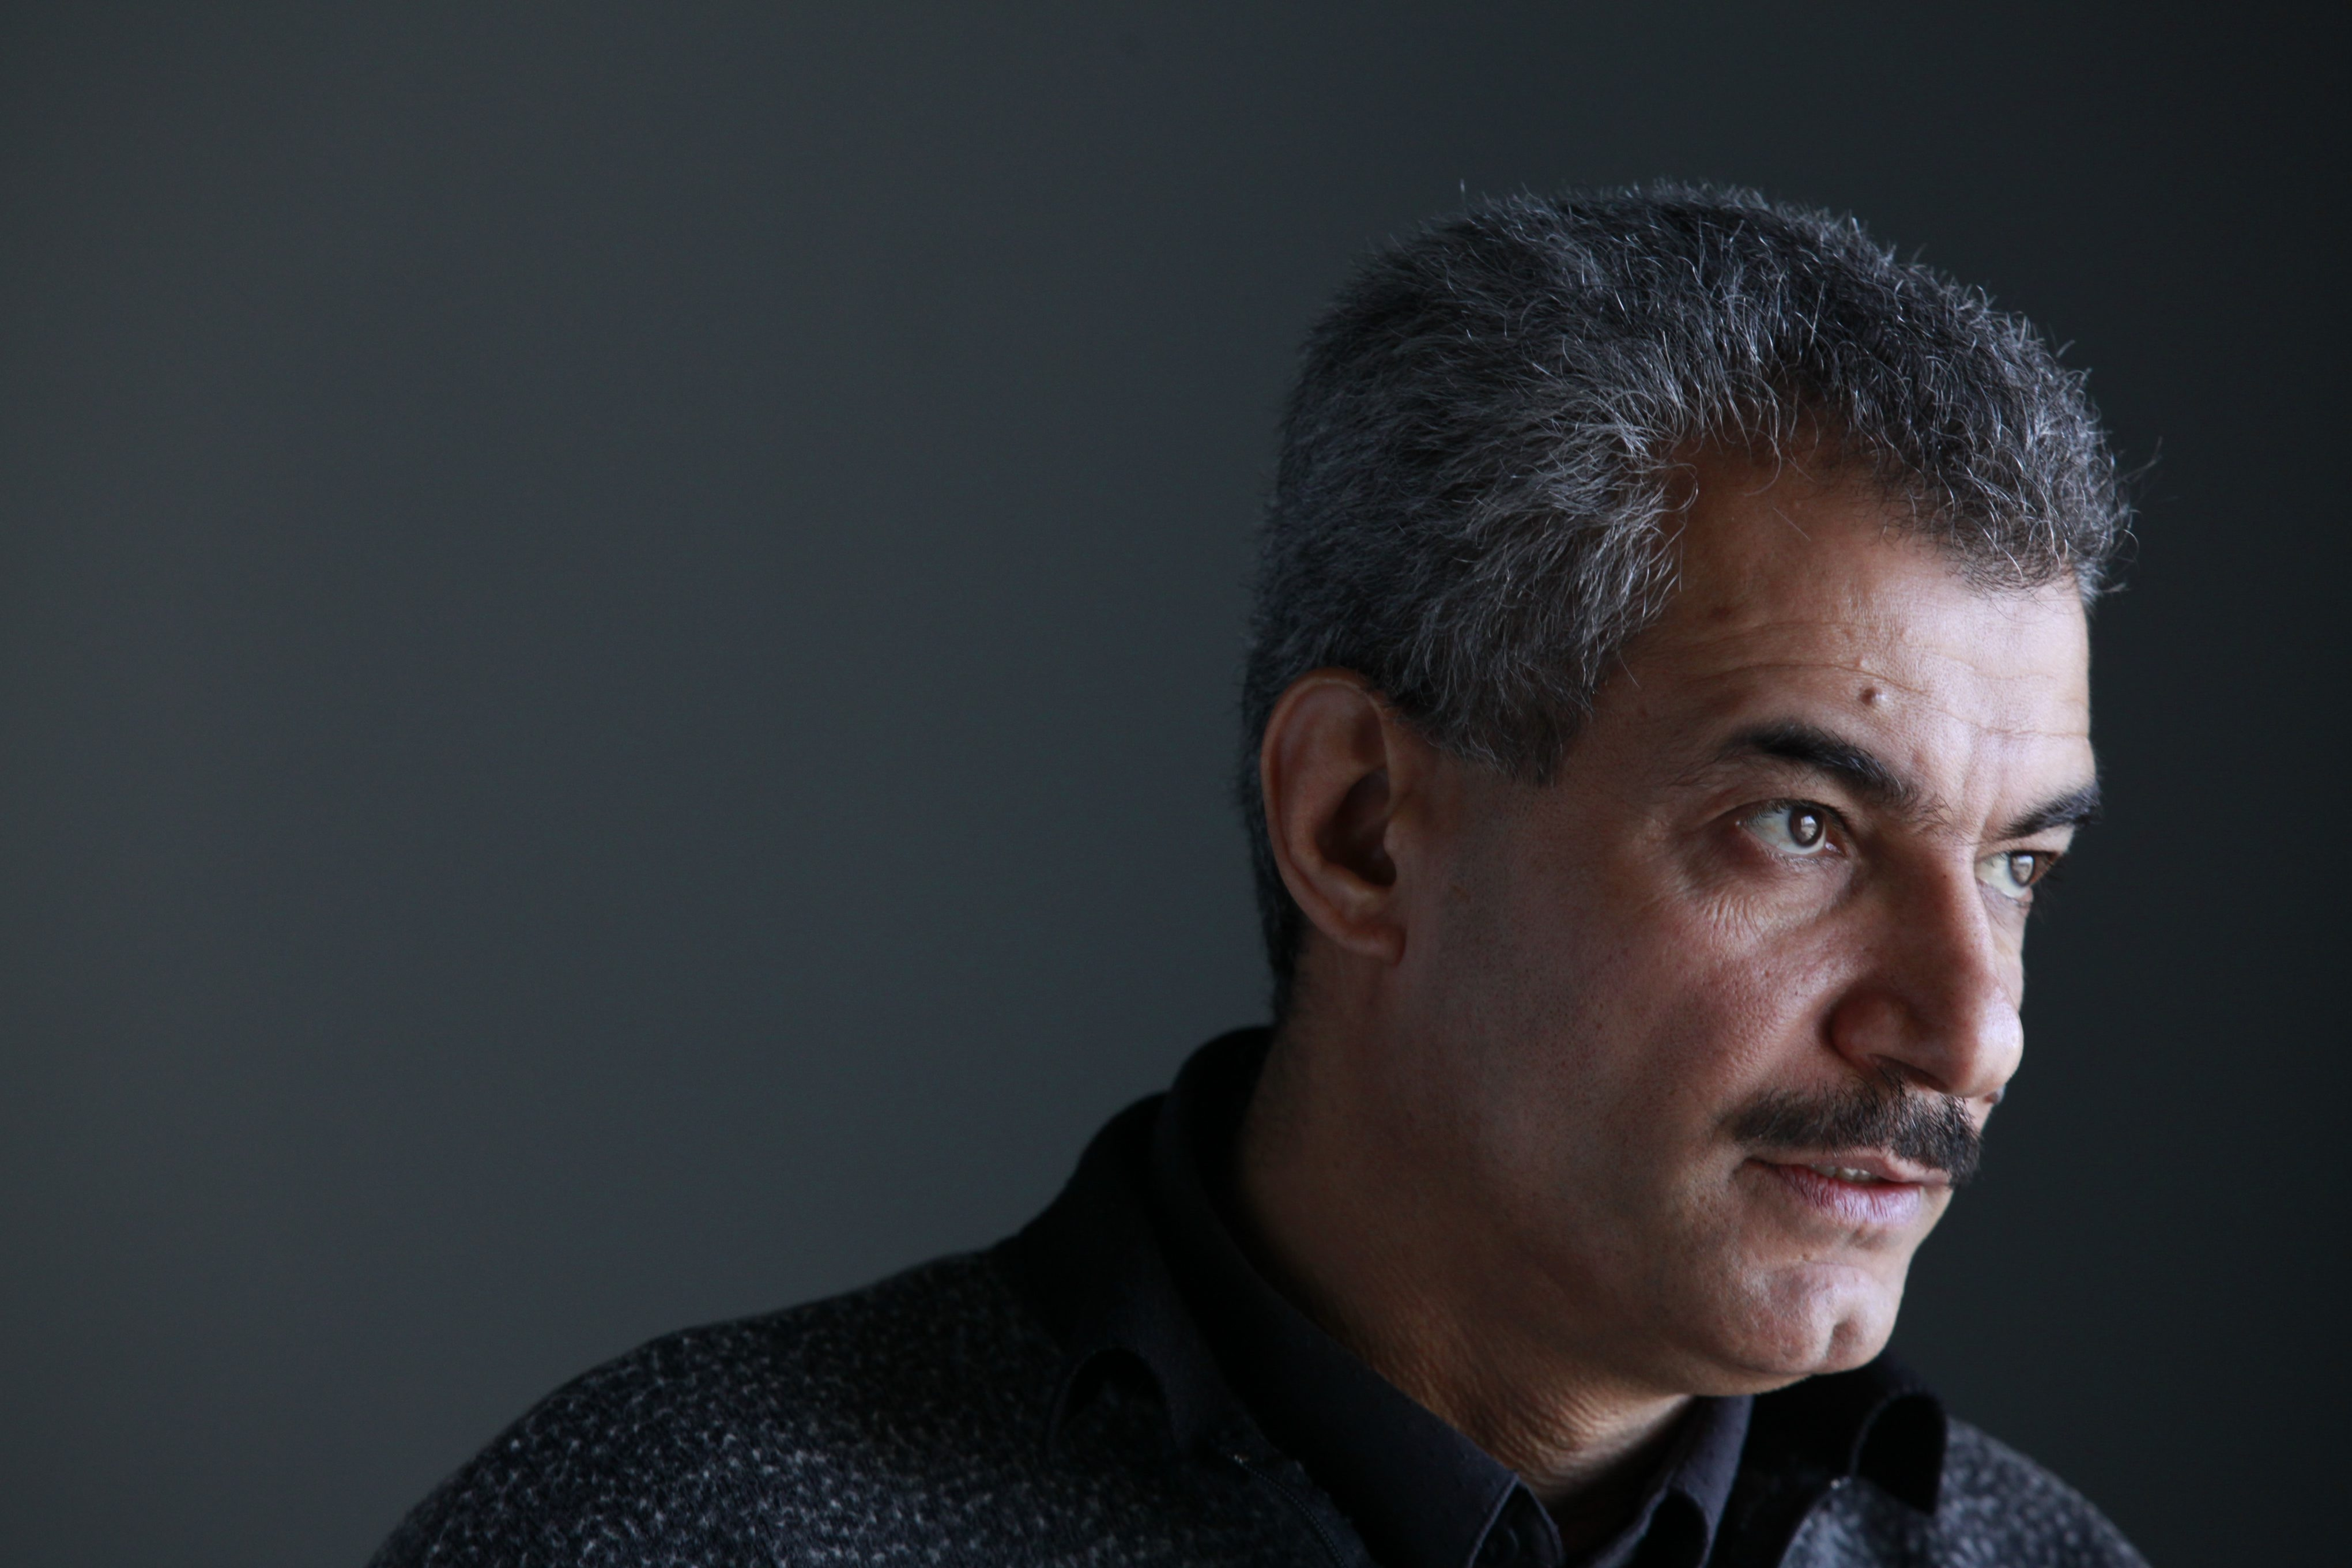 """""""I'm a good guy. I was doing the right thing in Iraq. I had access to millions of dollars. Why would I do something like this?"""" – Steve Jabar, in an interview with The Buffalo News last month"""